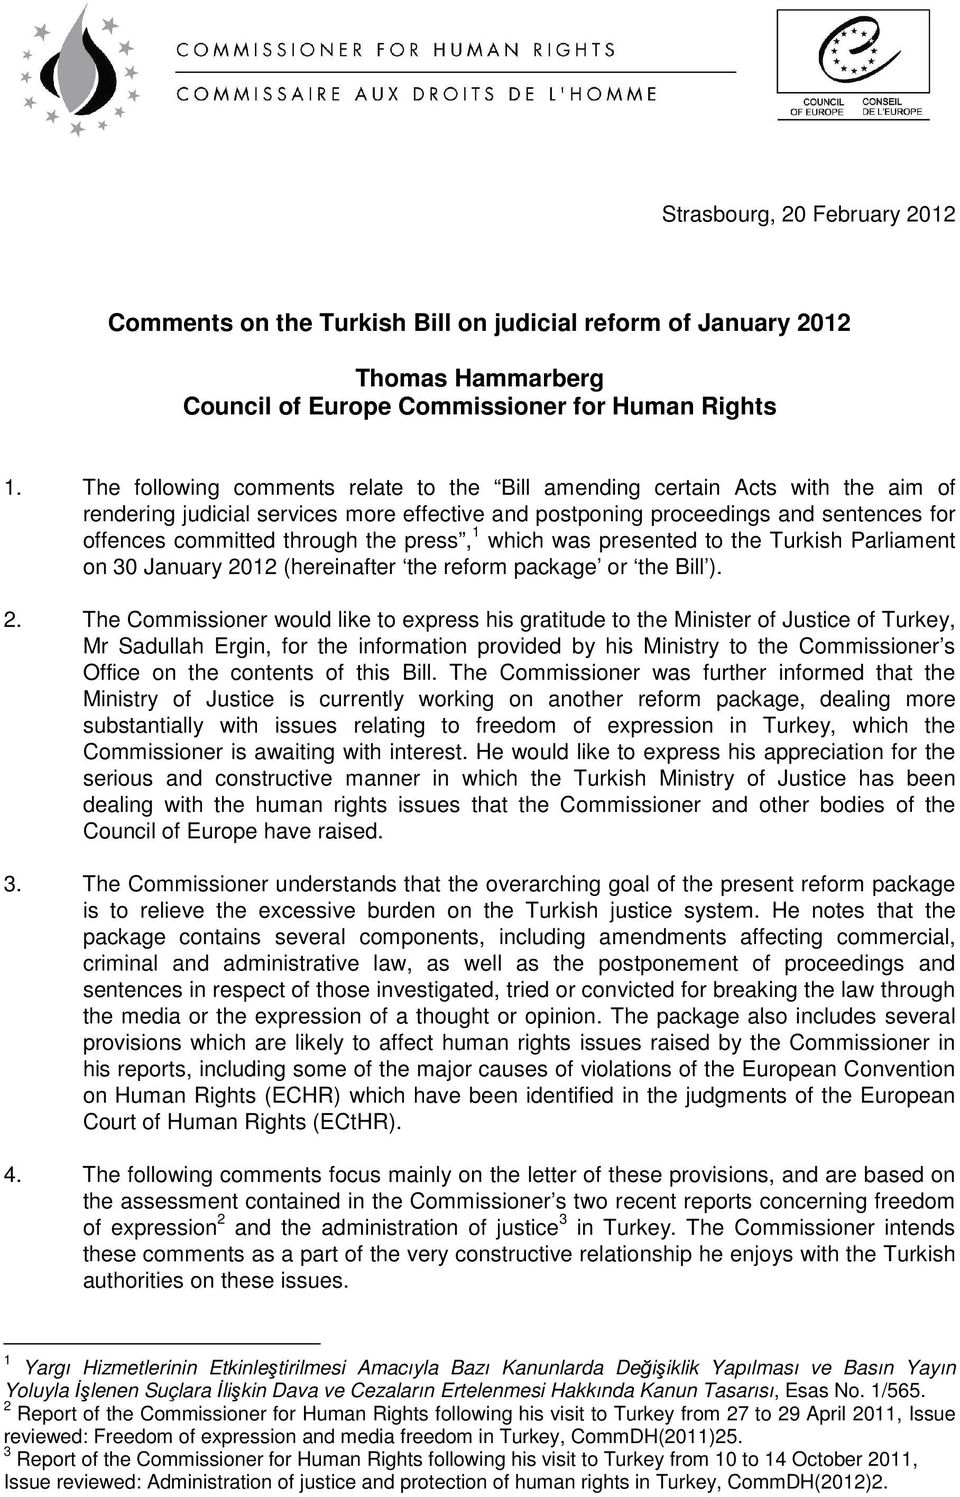 press, 1 which was presented to the Turkish Parliament on 30 January 20